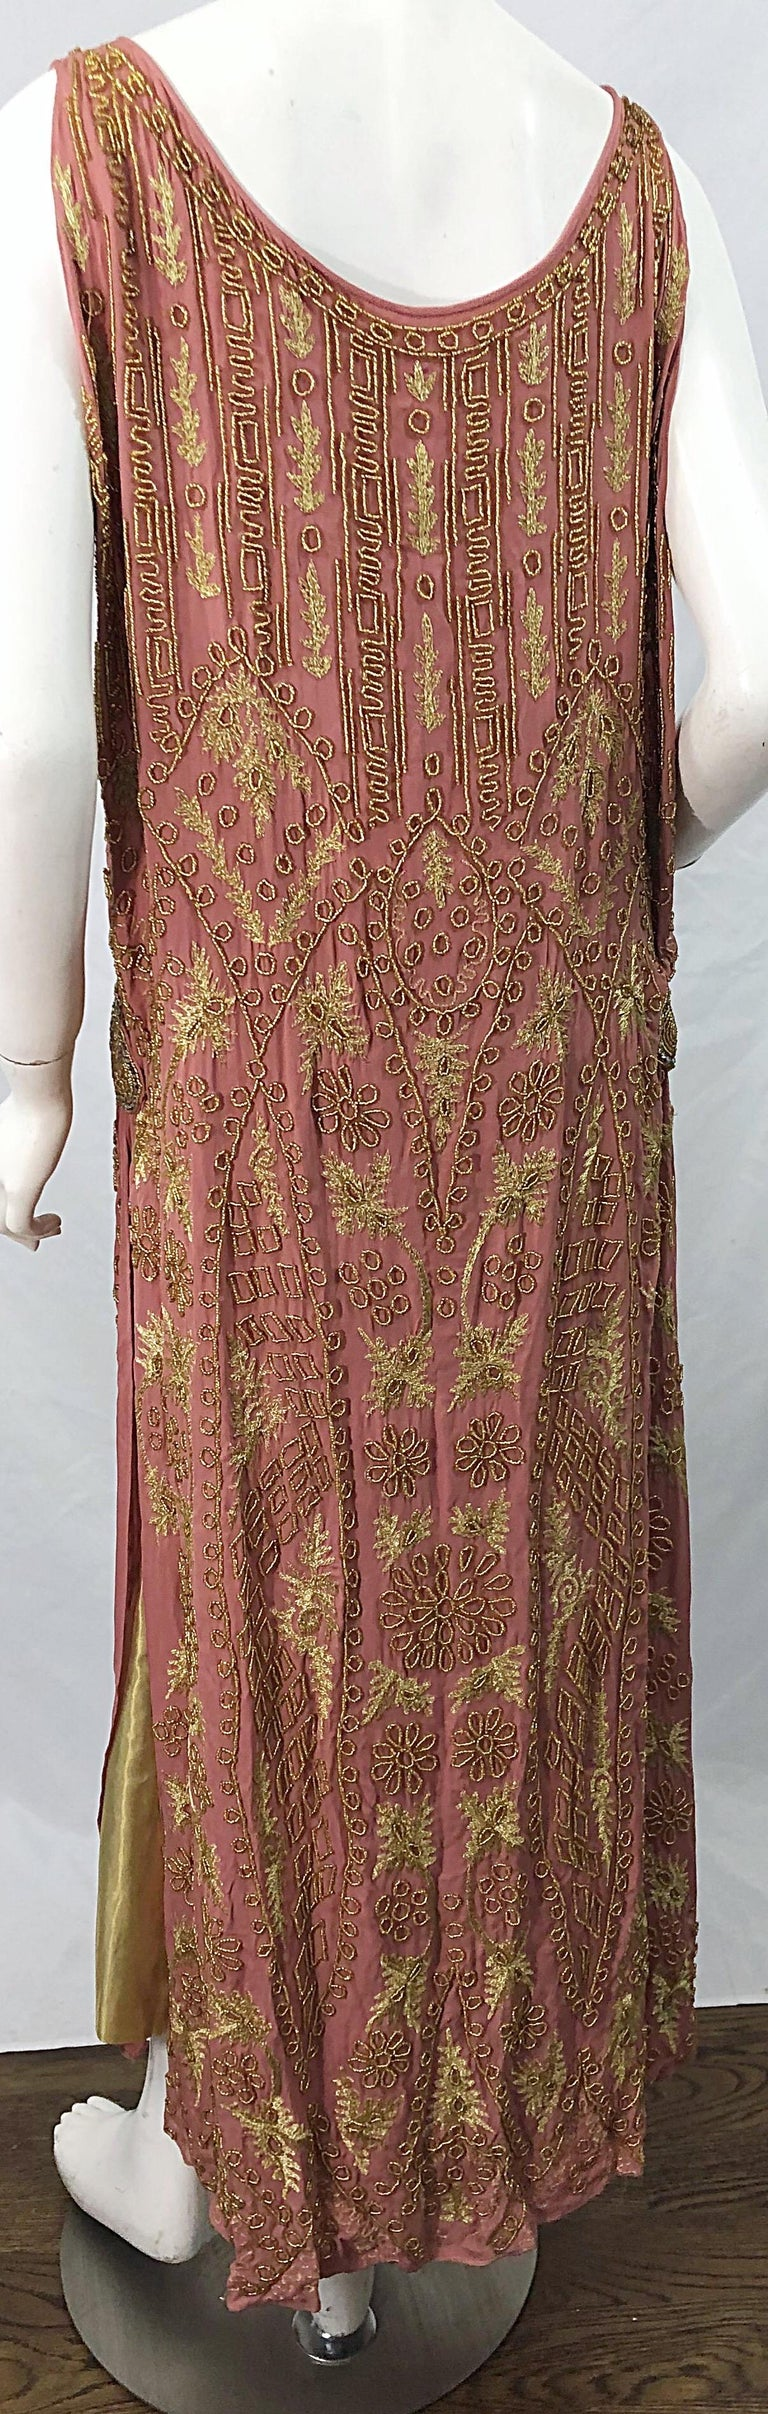 1920s French Couture Pink + Gold Beaded Gatsby Roaring 20s Vintage Flapper Dress For Sale 7